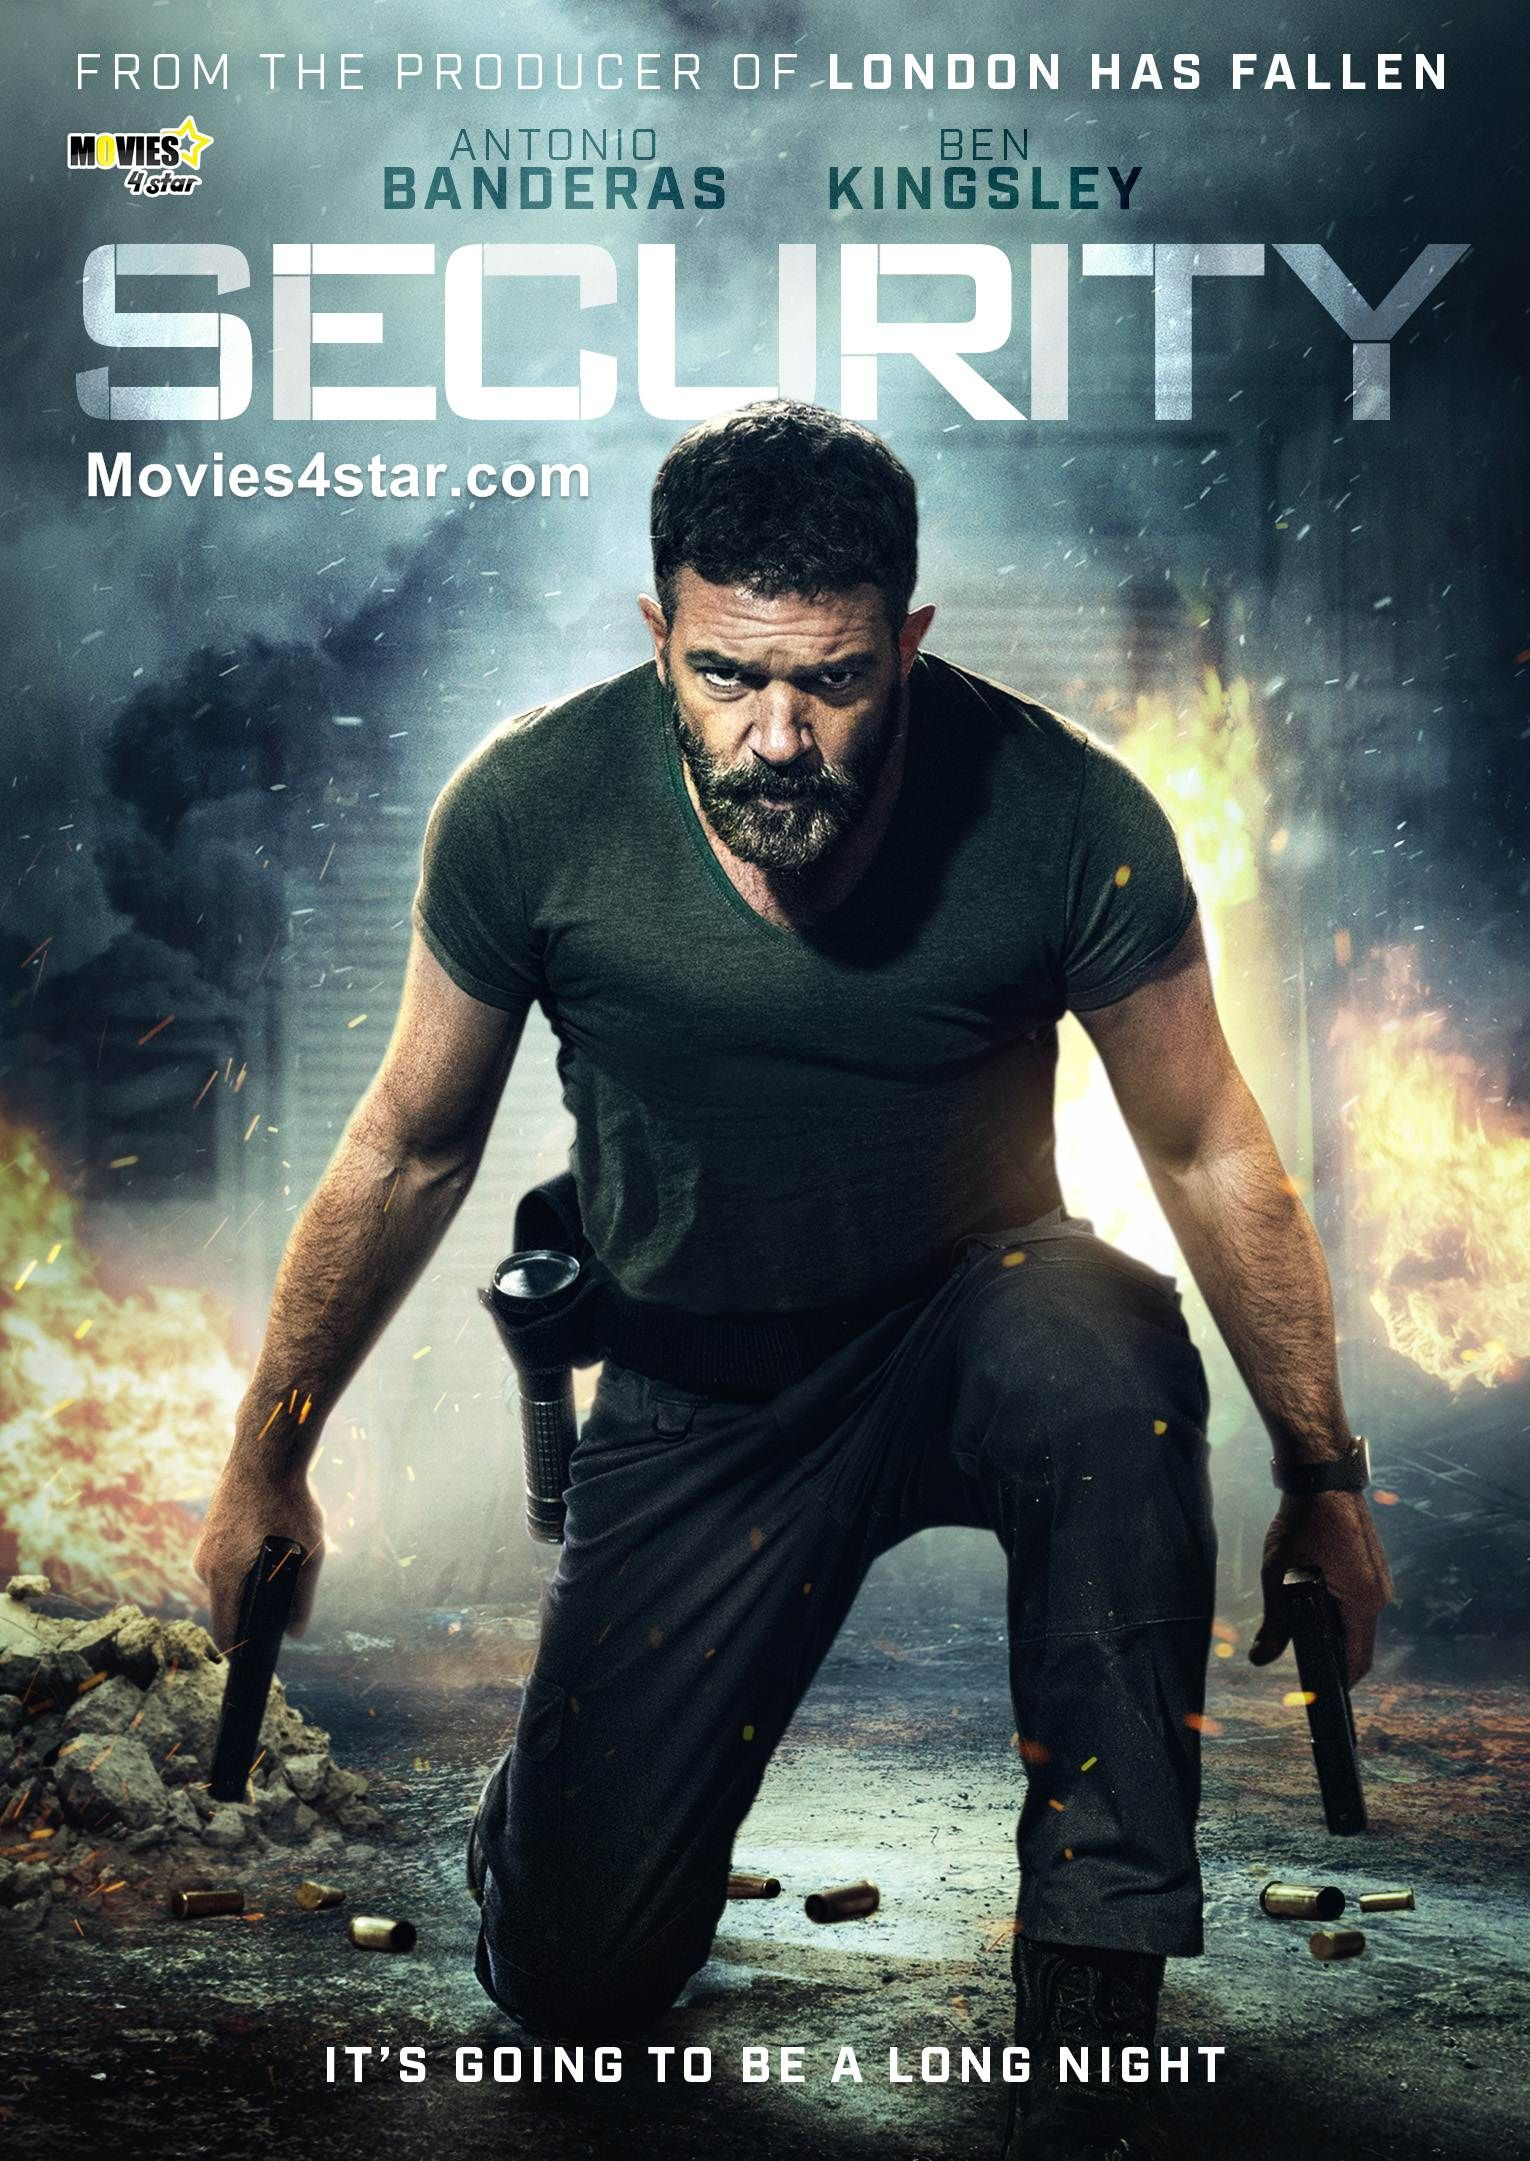 Download Security 2017 Movie 720p Mkv Free Online from